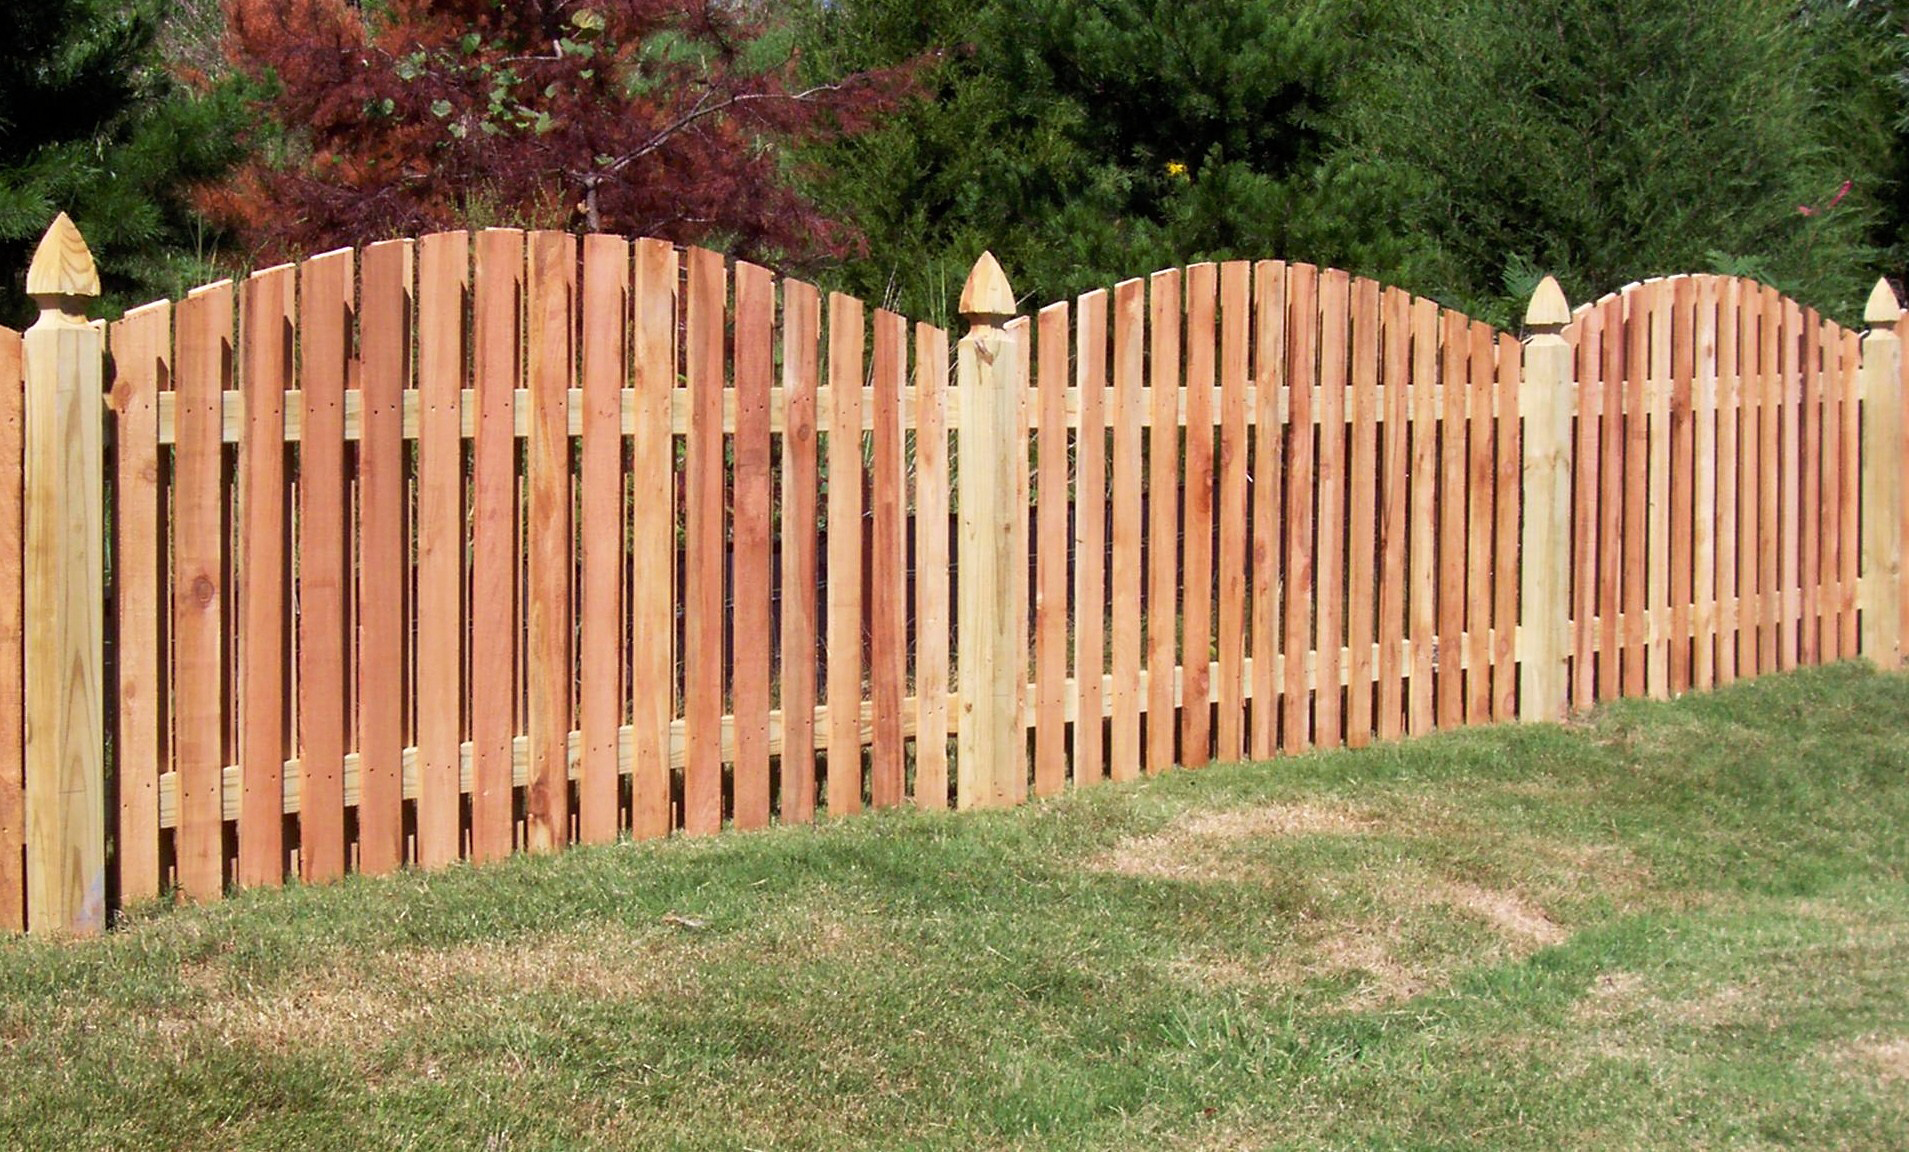 1000+ images about fence ideas on Pinterest | Front yard fence